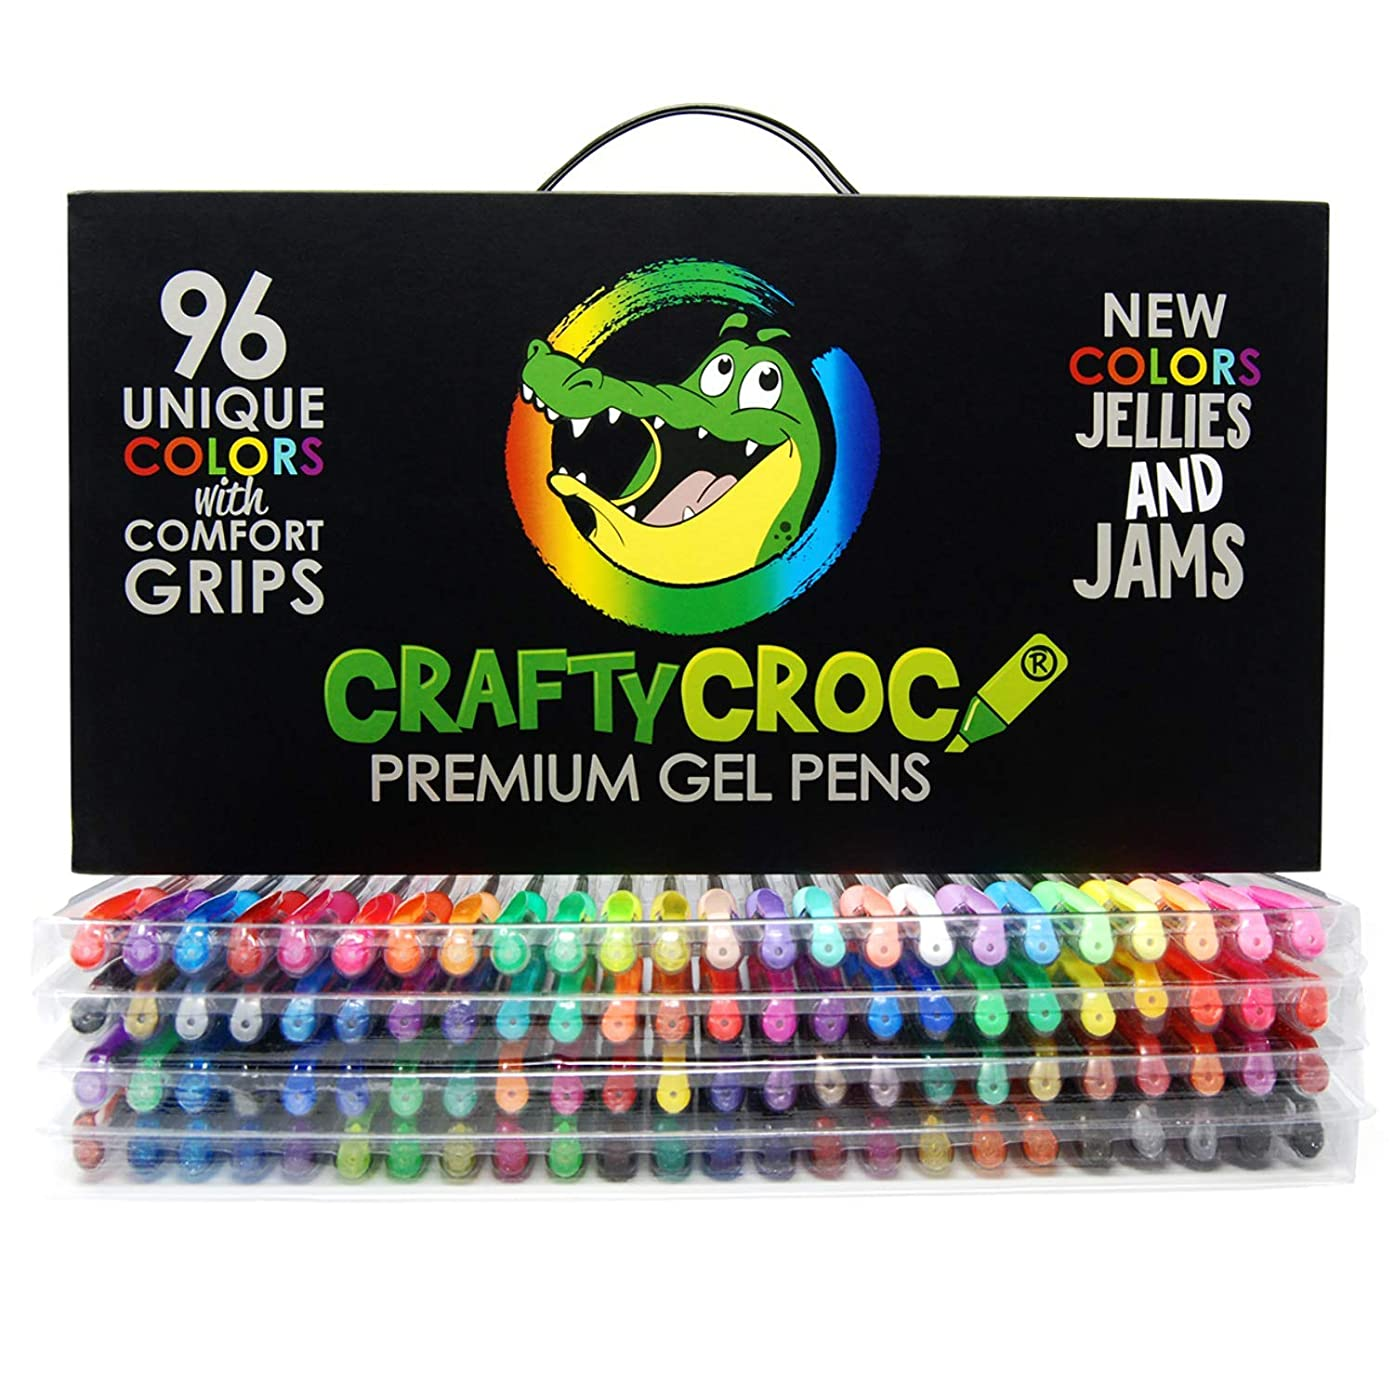 Crafty Croc Gel Pens for Adult Coloring Books - Refillable Ink Gel Pen Set with Case - Includes 96 Artist Quality Coloring Pens: Glitter, Metallic, Pastel (1 White), Neon - Soft Comfort Grips